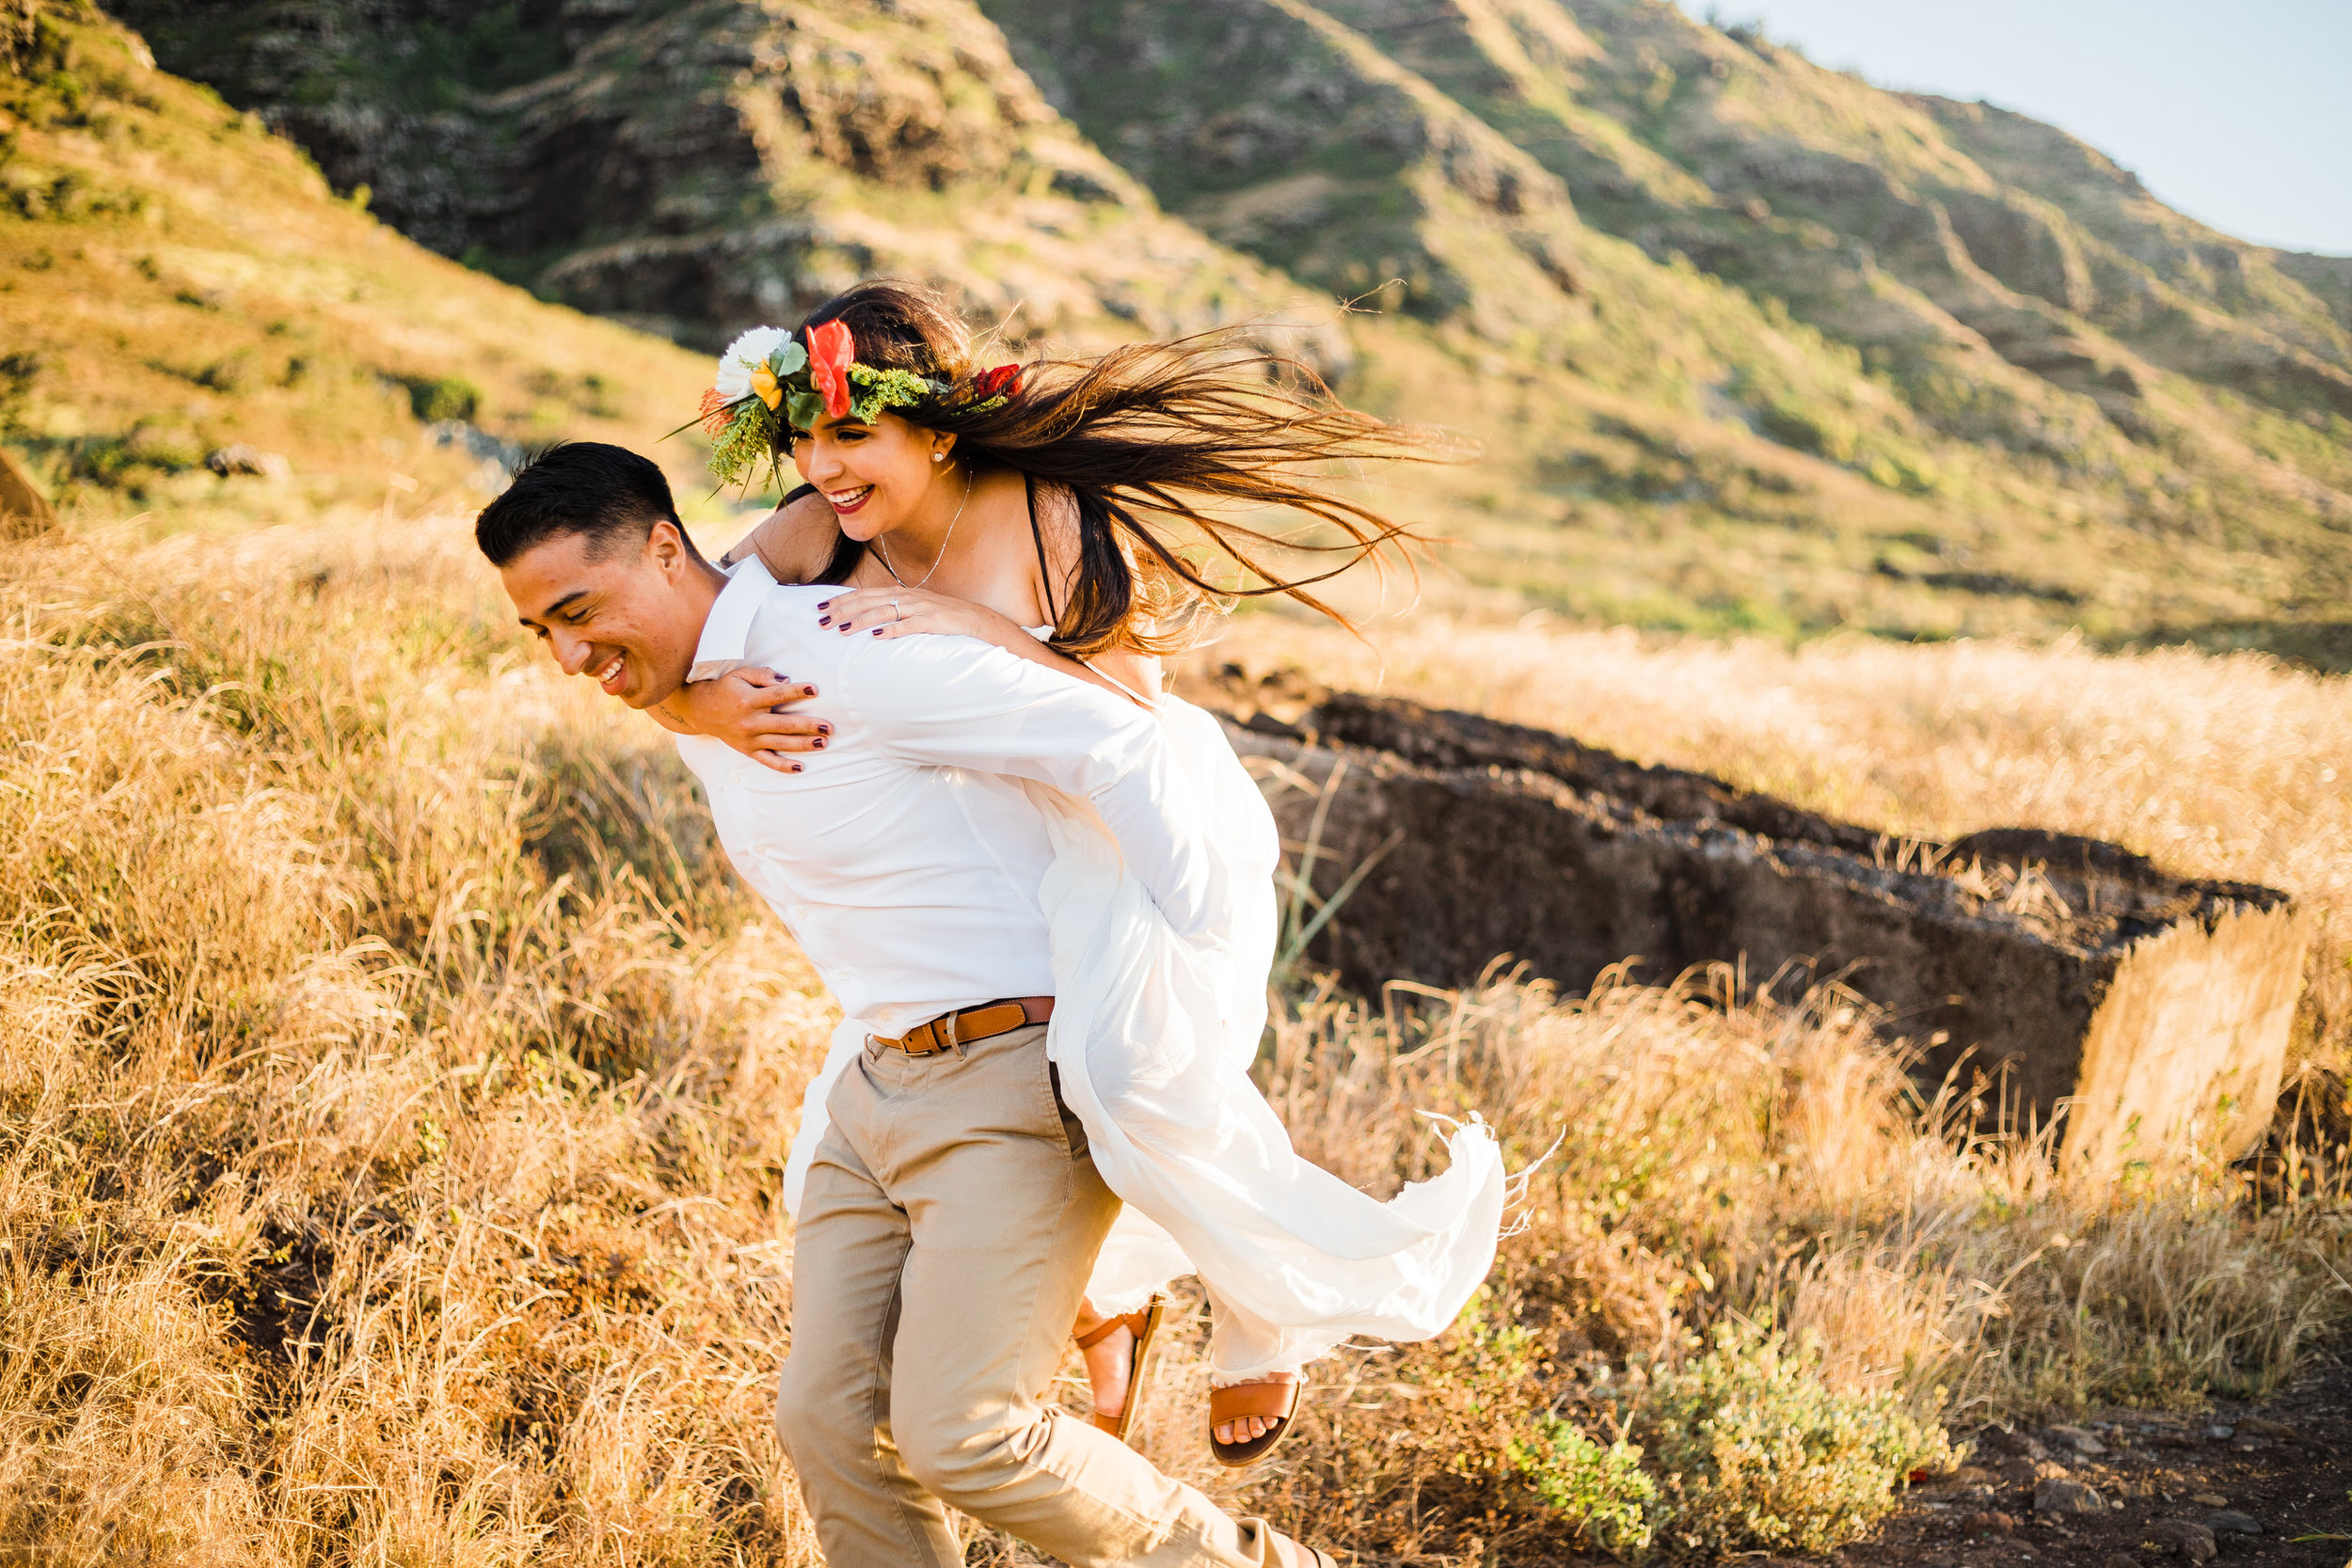 intimate-elopement-sunset-oahu-haku-12.jpg